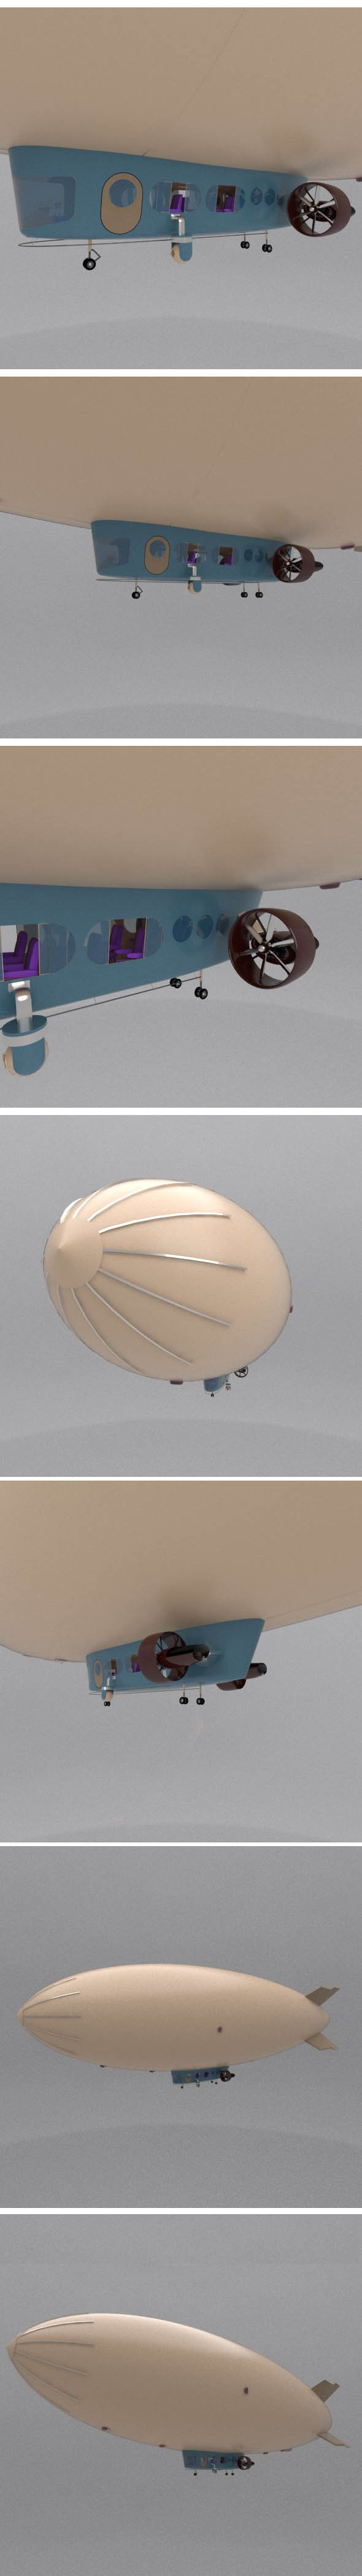 Skyship AIRSHIP Zeppelin - 3DOcean Item for Sale